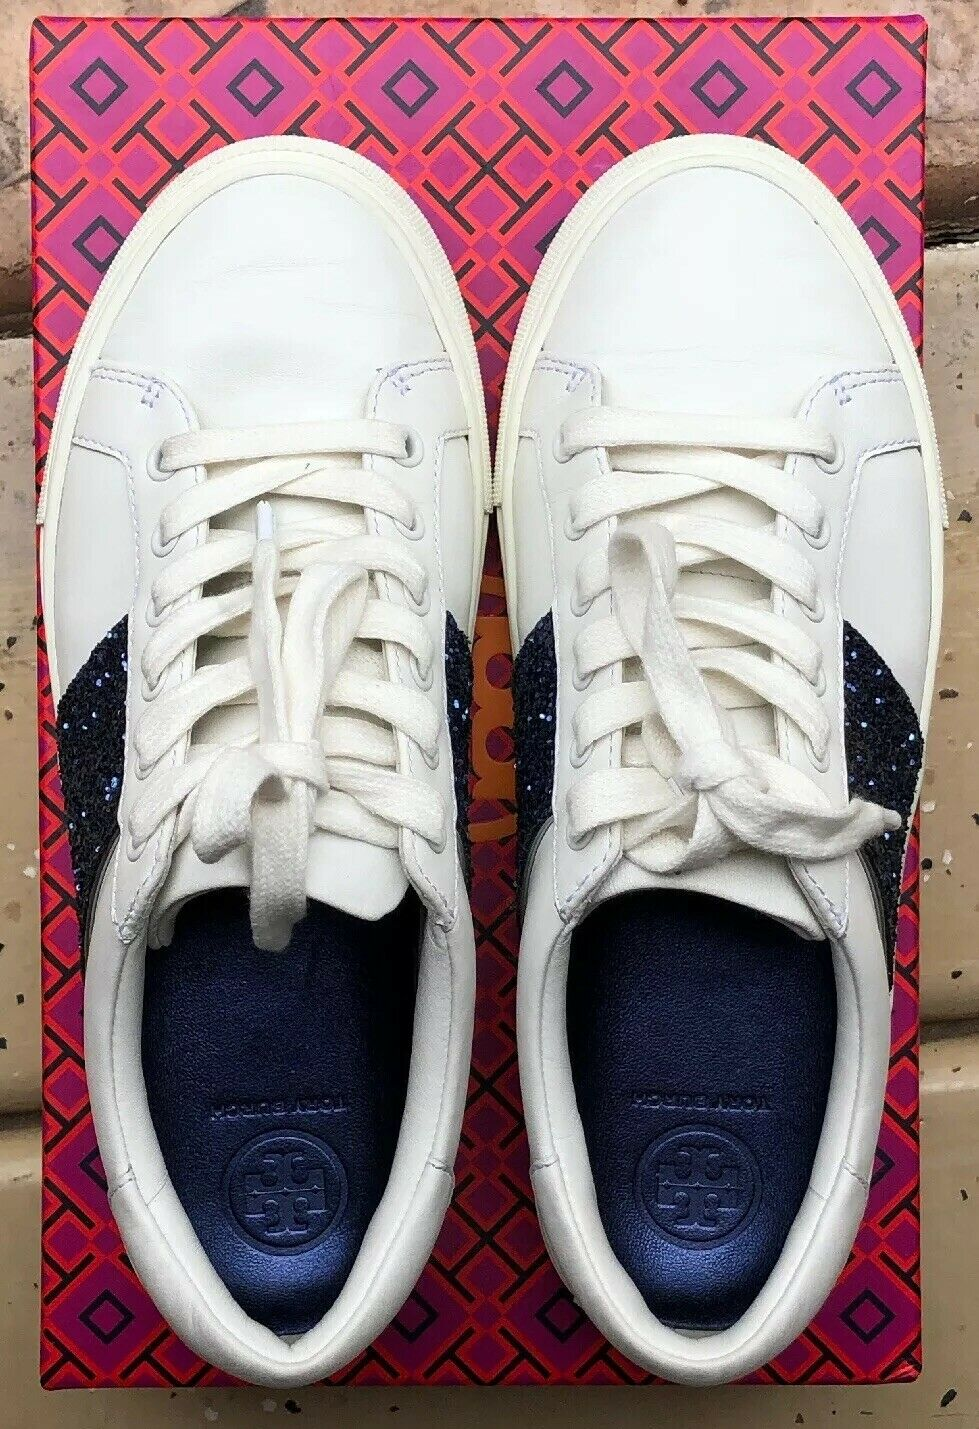 Tory Burch Carter Glitter Lace-up Sneakers White Navy 6.5